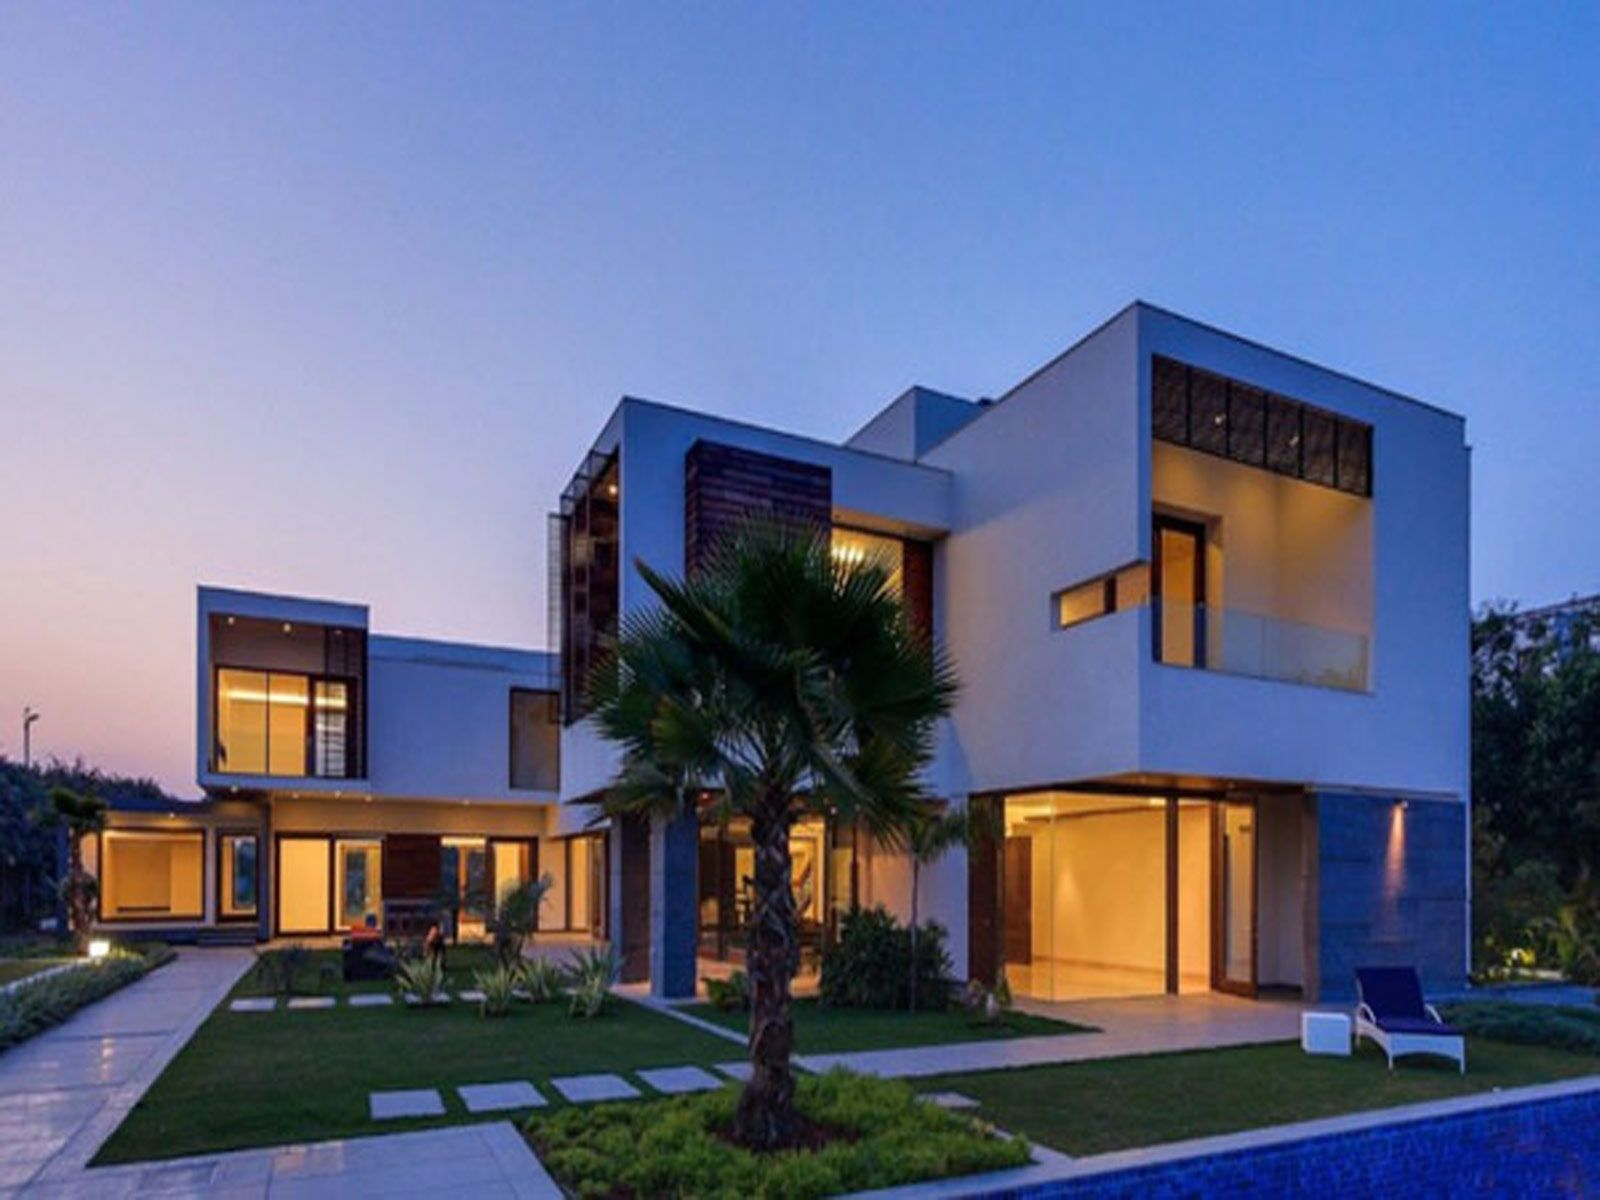 Contemporary Luxury Home And Architecture In New Design Mansions